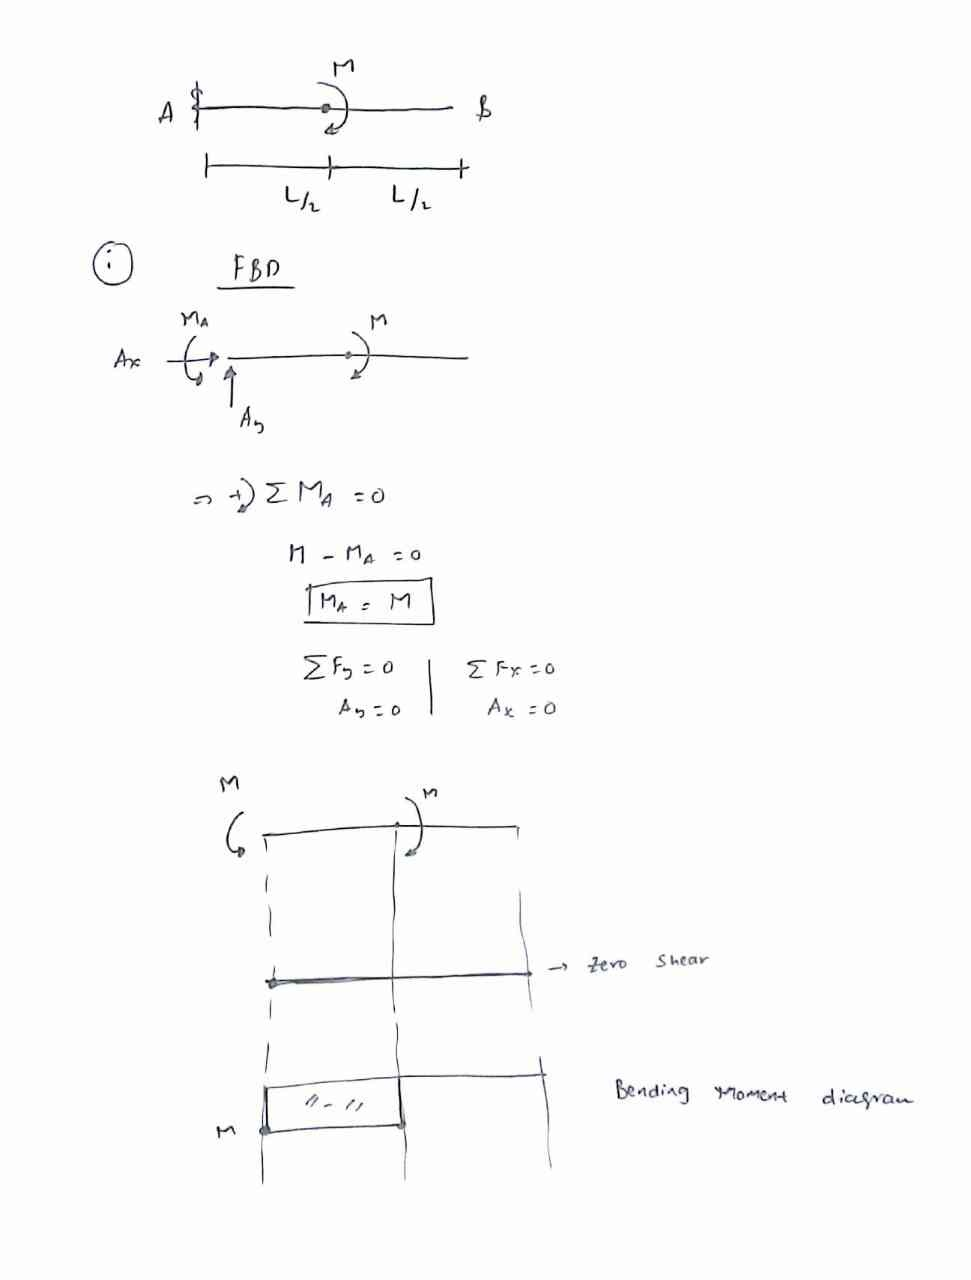 What Will Be The Shear Force And Bending Moment Diagram When A Draw Diagrams For Overhanging Beam 193 Views View 4 Upvoters